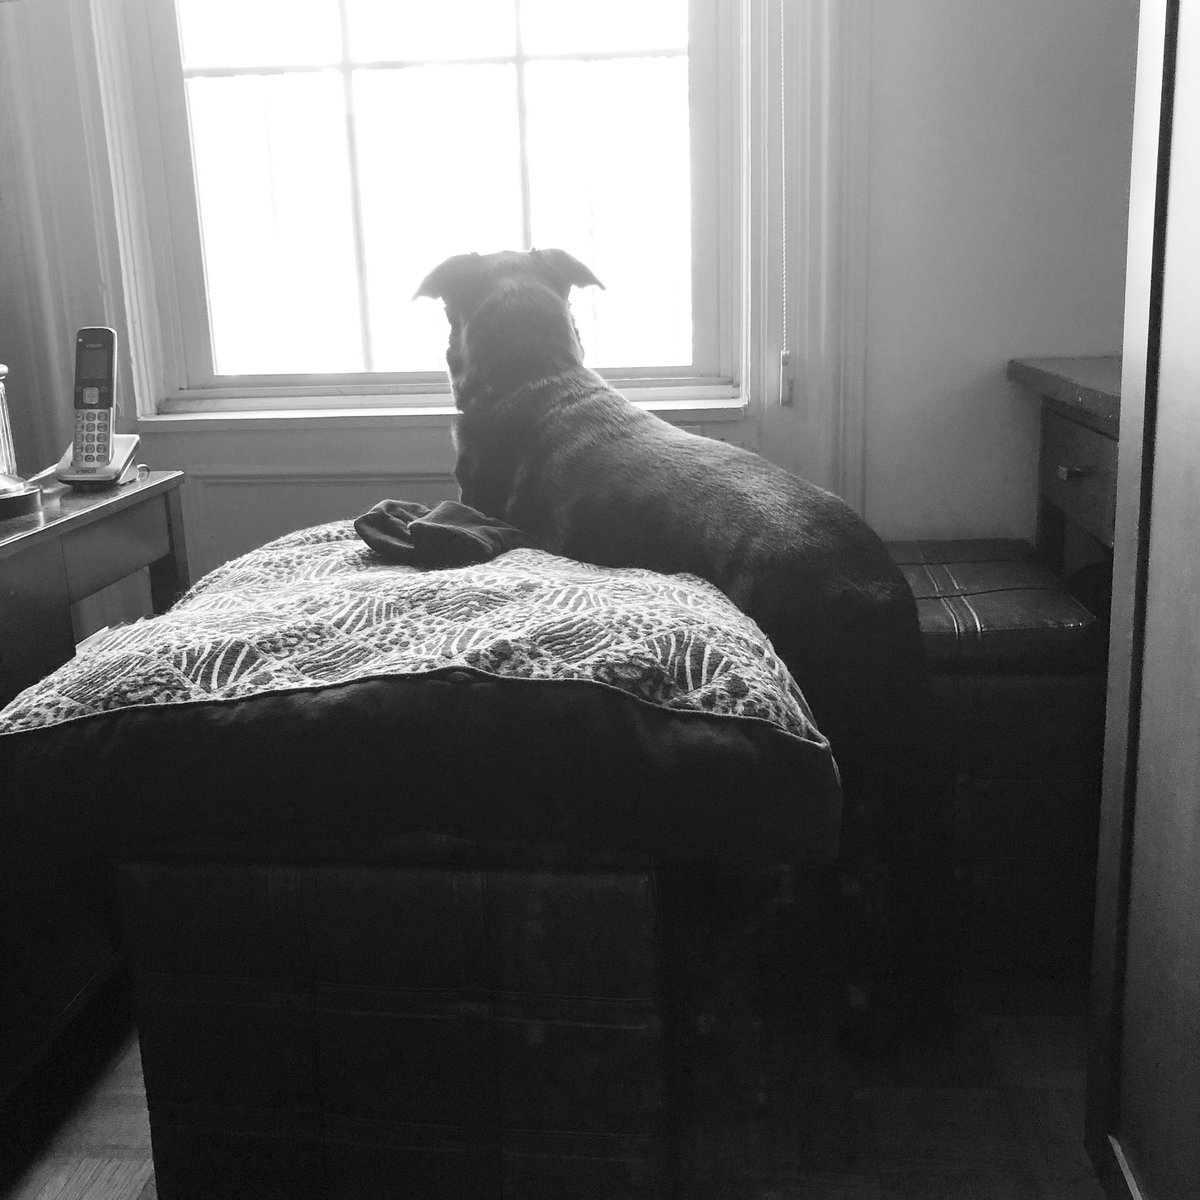 Lana's @lanathelovepup favorite new morning ritual: kisses, breakfast, and sit/standing at her big window of wonder. #lovelyblackdogs #happiness #rescuedogs #rescuedogsofinstagram #rescuedogsofboston #bordercollie #borderlab